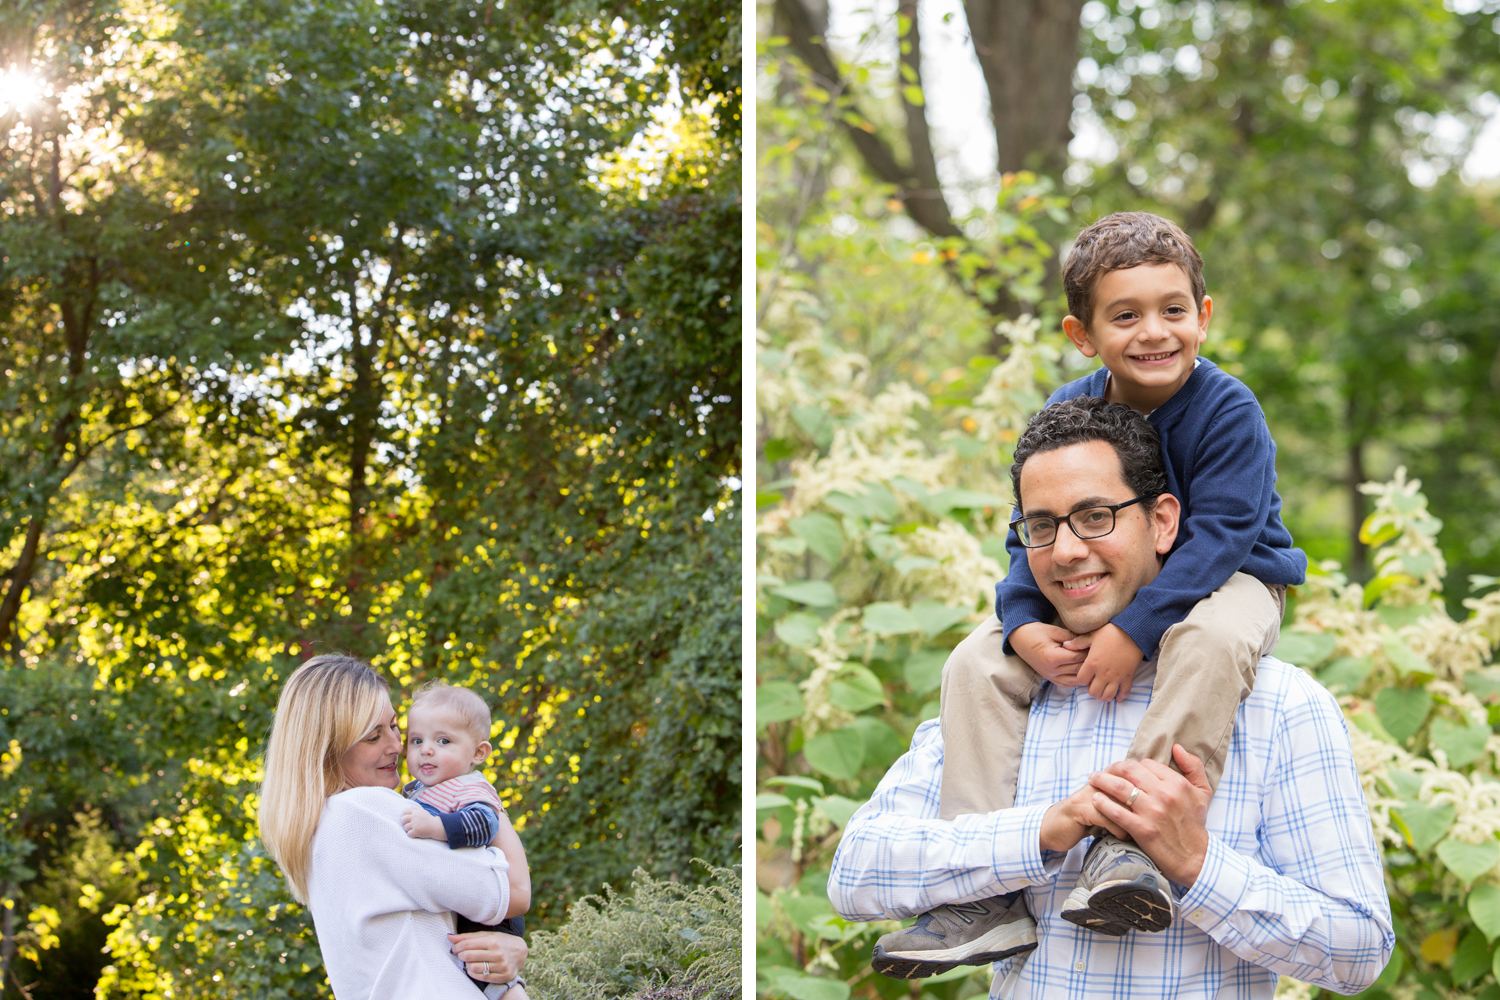 NJ_Family_Photographer_19.jpg